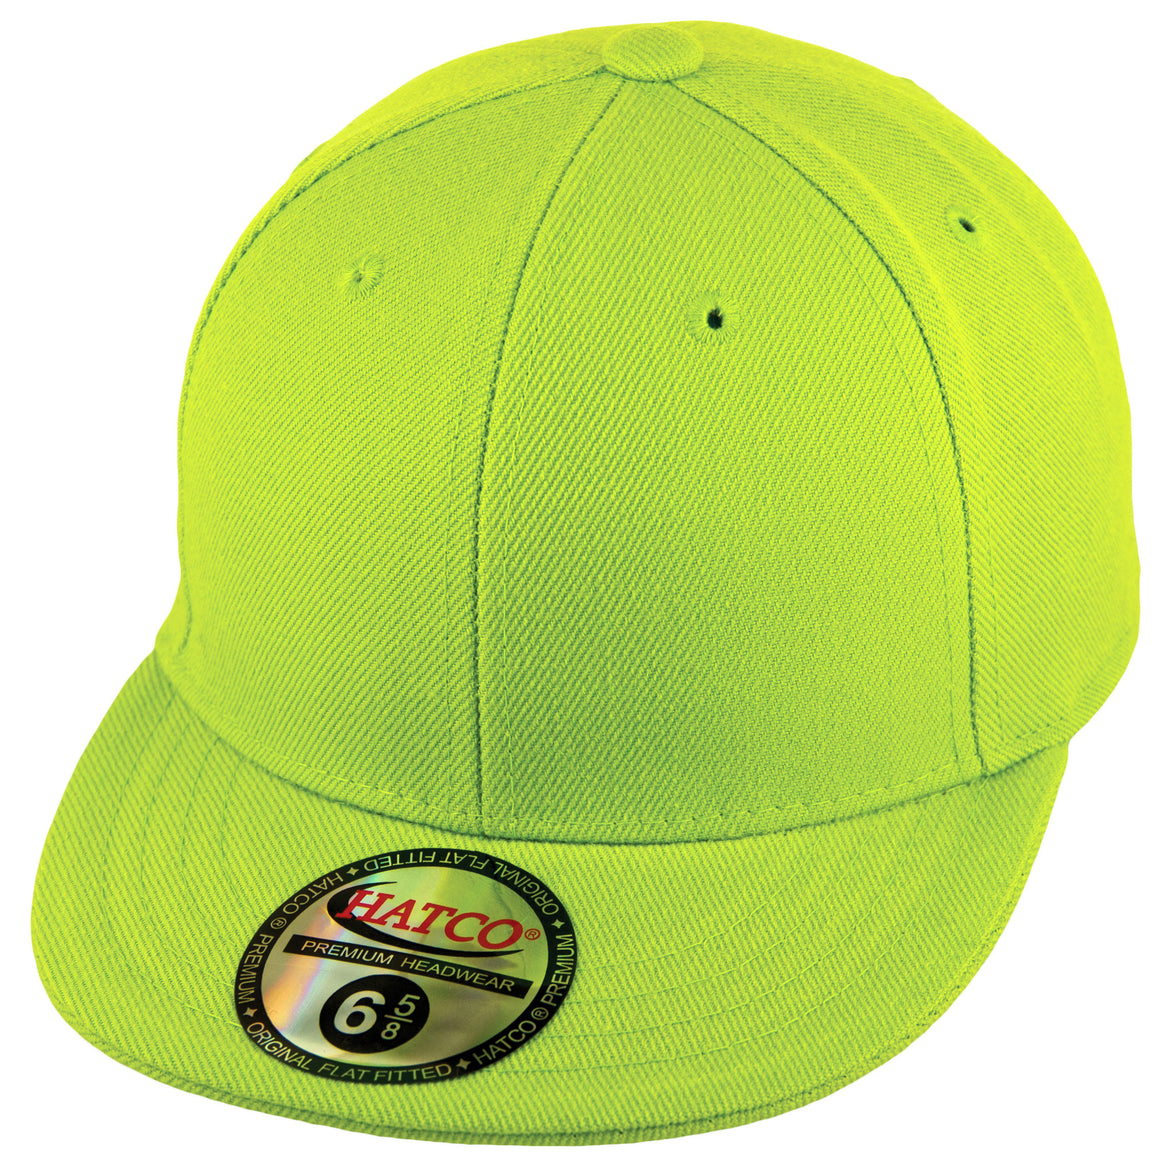 Blank Flat Fitted Cap - Kids - Lime - HATCOcaps.com